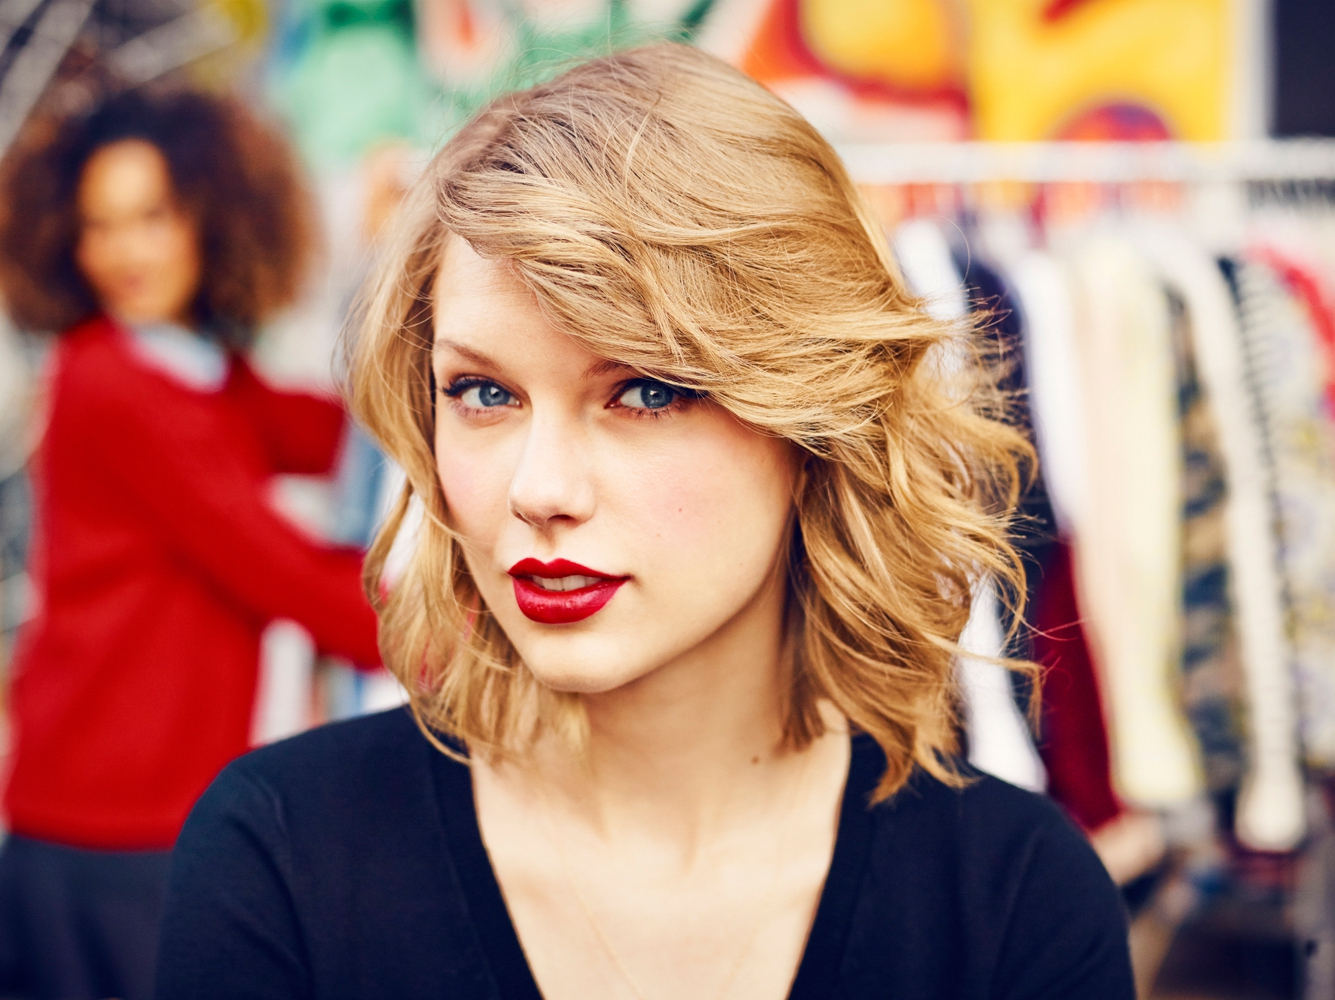 Taylor Swift Hair Wallpaper Hd Wallpapers